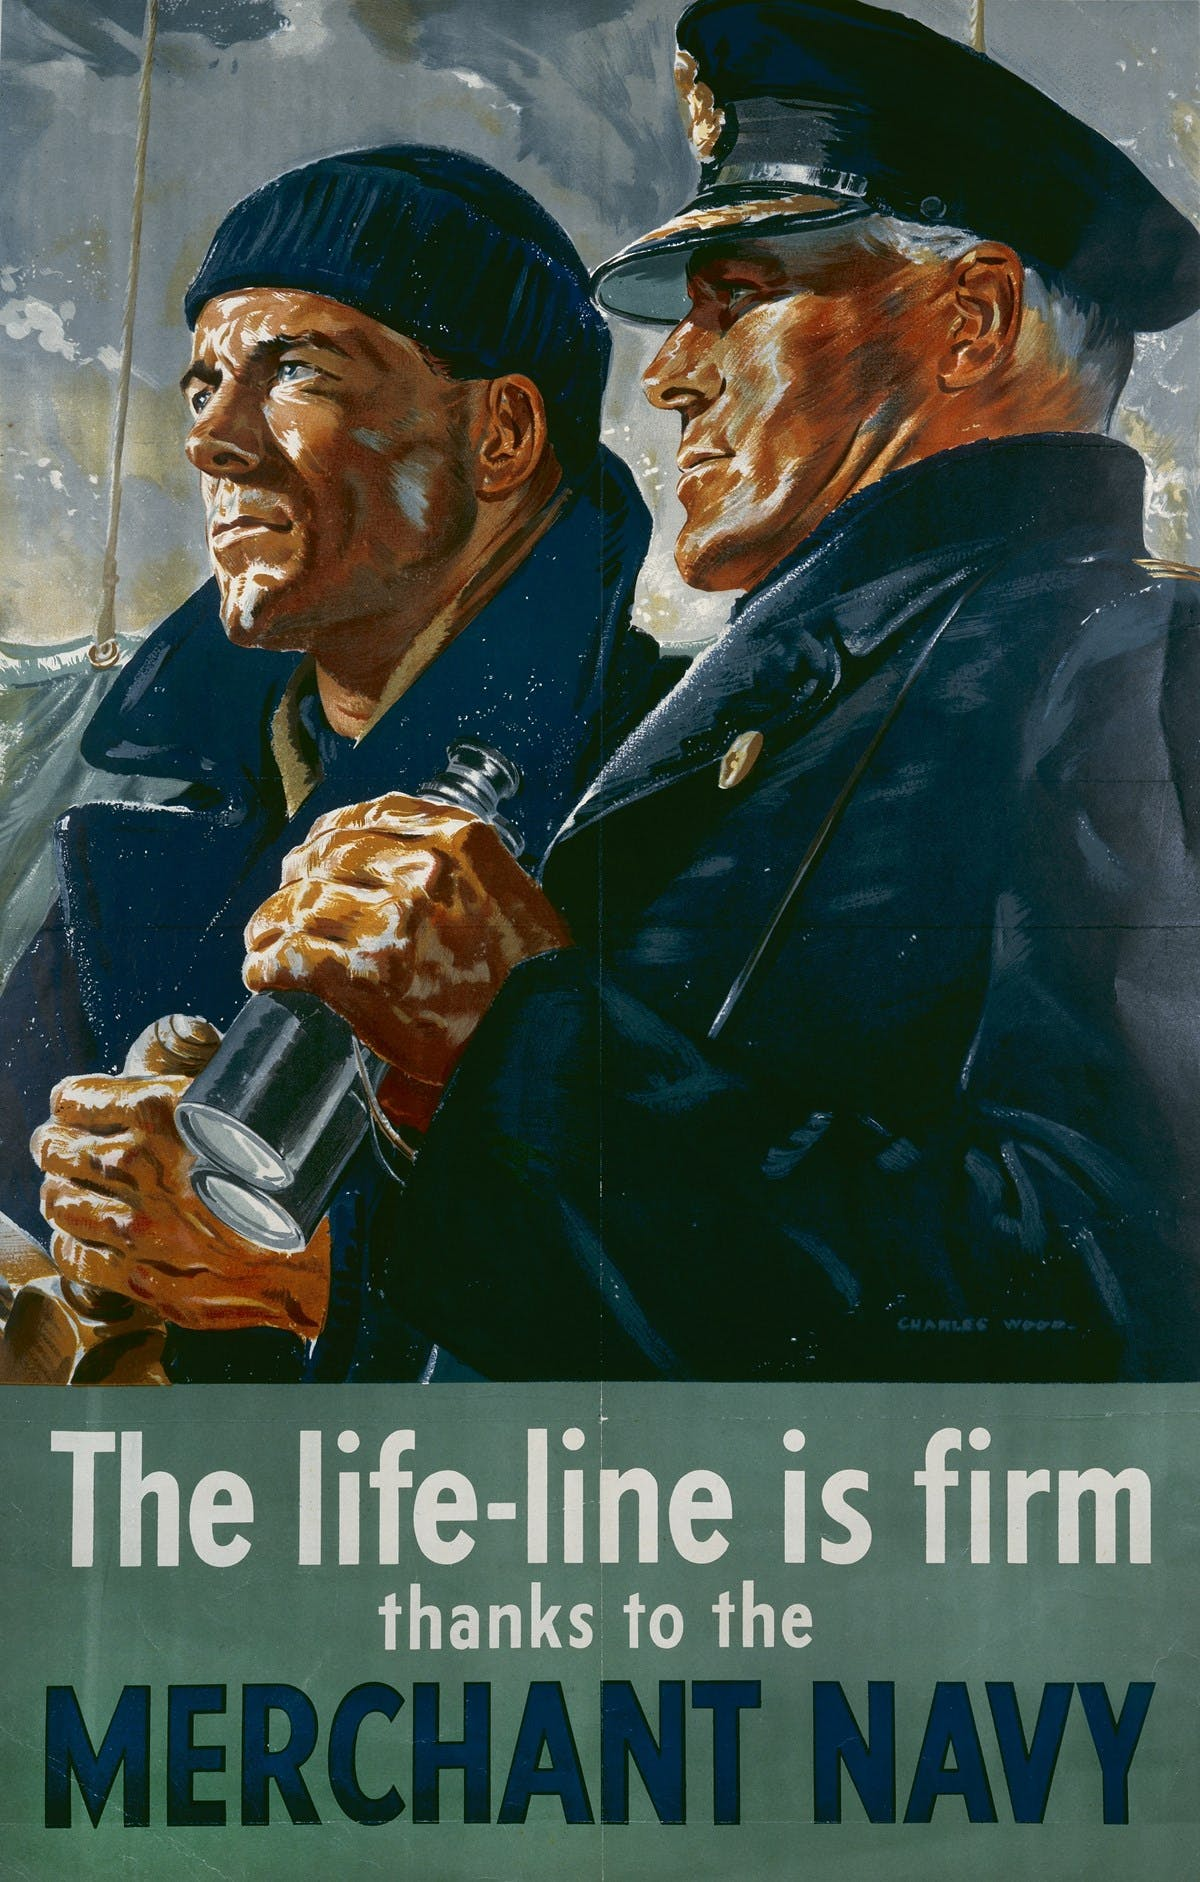 Propaganda poster for the Merchant Navy during World War II. The poster shows an ultra-realistic drawing with a coxswain at a ship's wheel, and an officer with binoculars drawn by Charles Wood. Underneath, the caption reads: `The life-line is firm thanks to the Merchant Navy`.